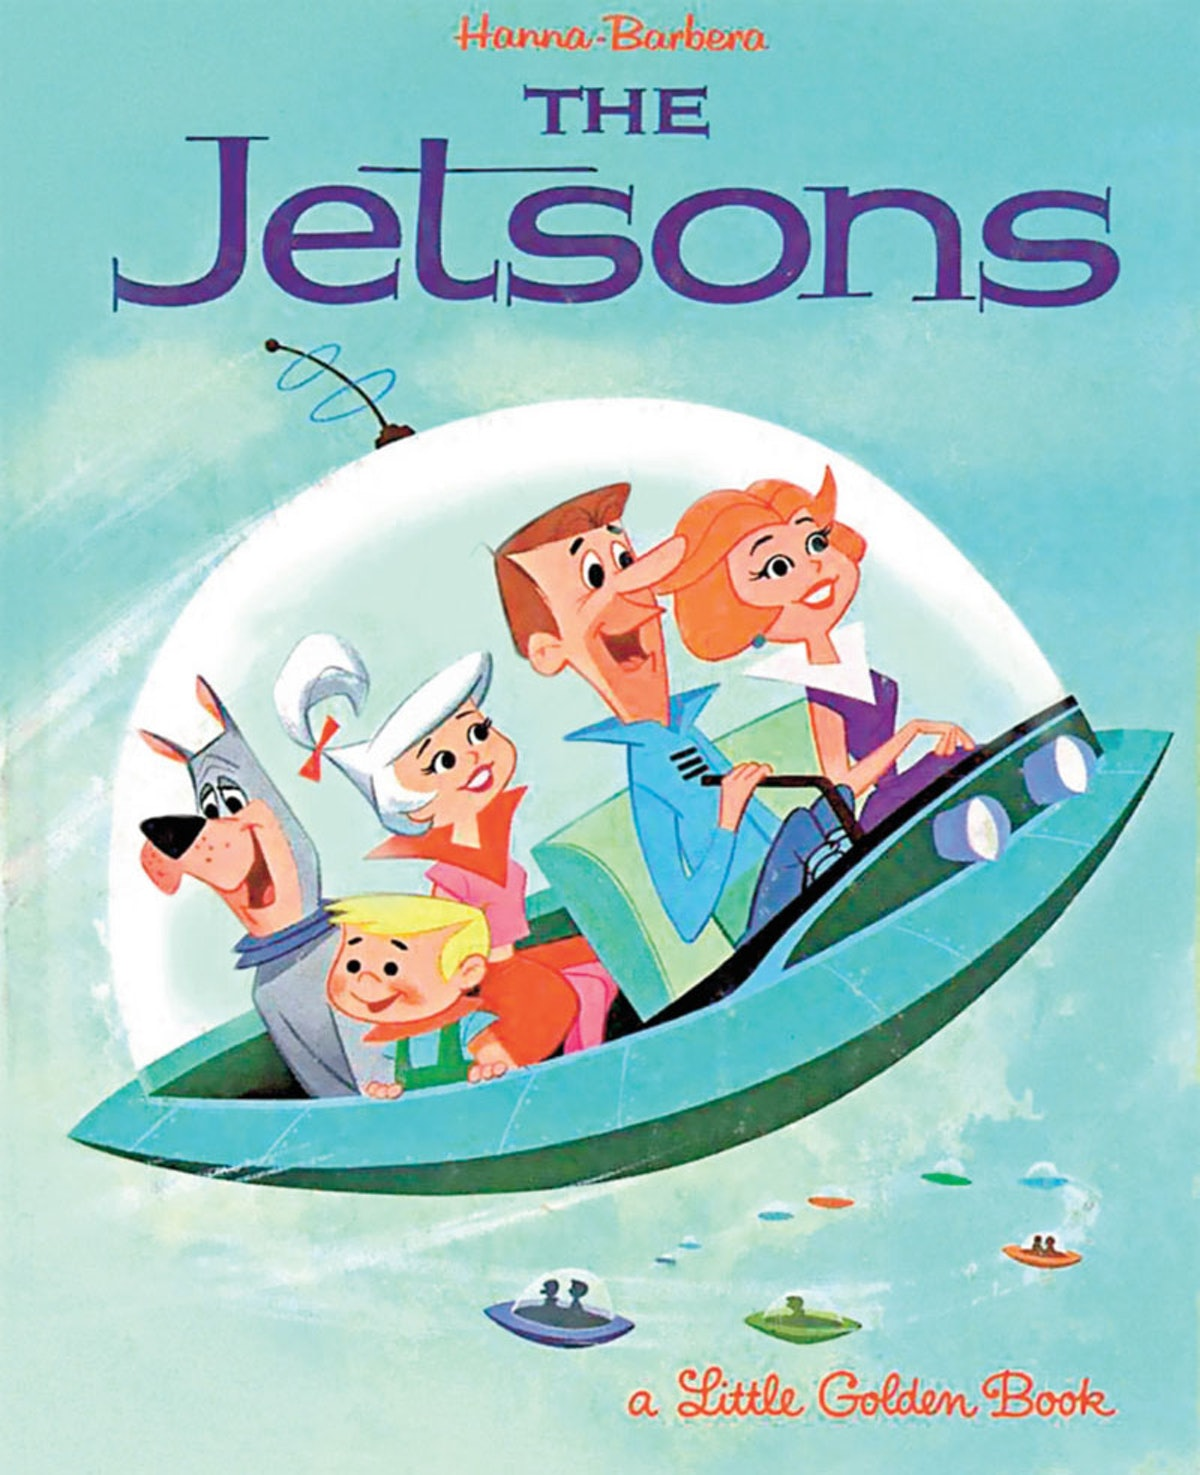 The Jetsons book